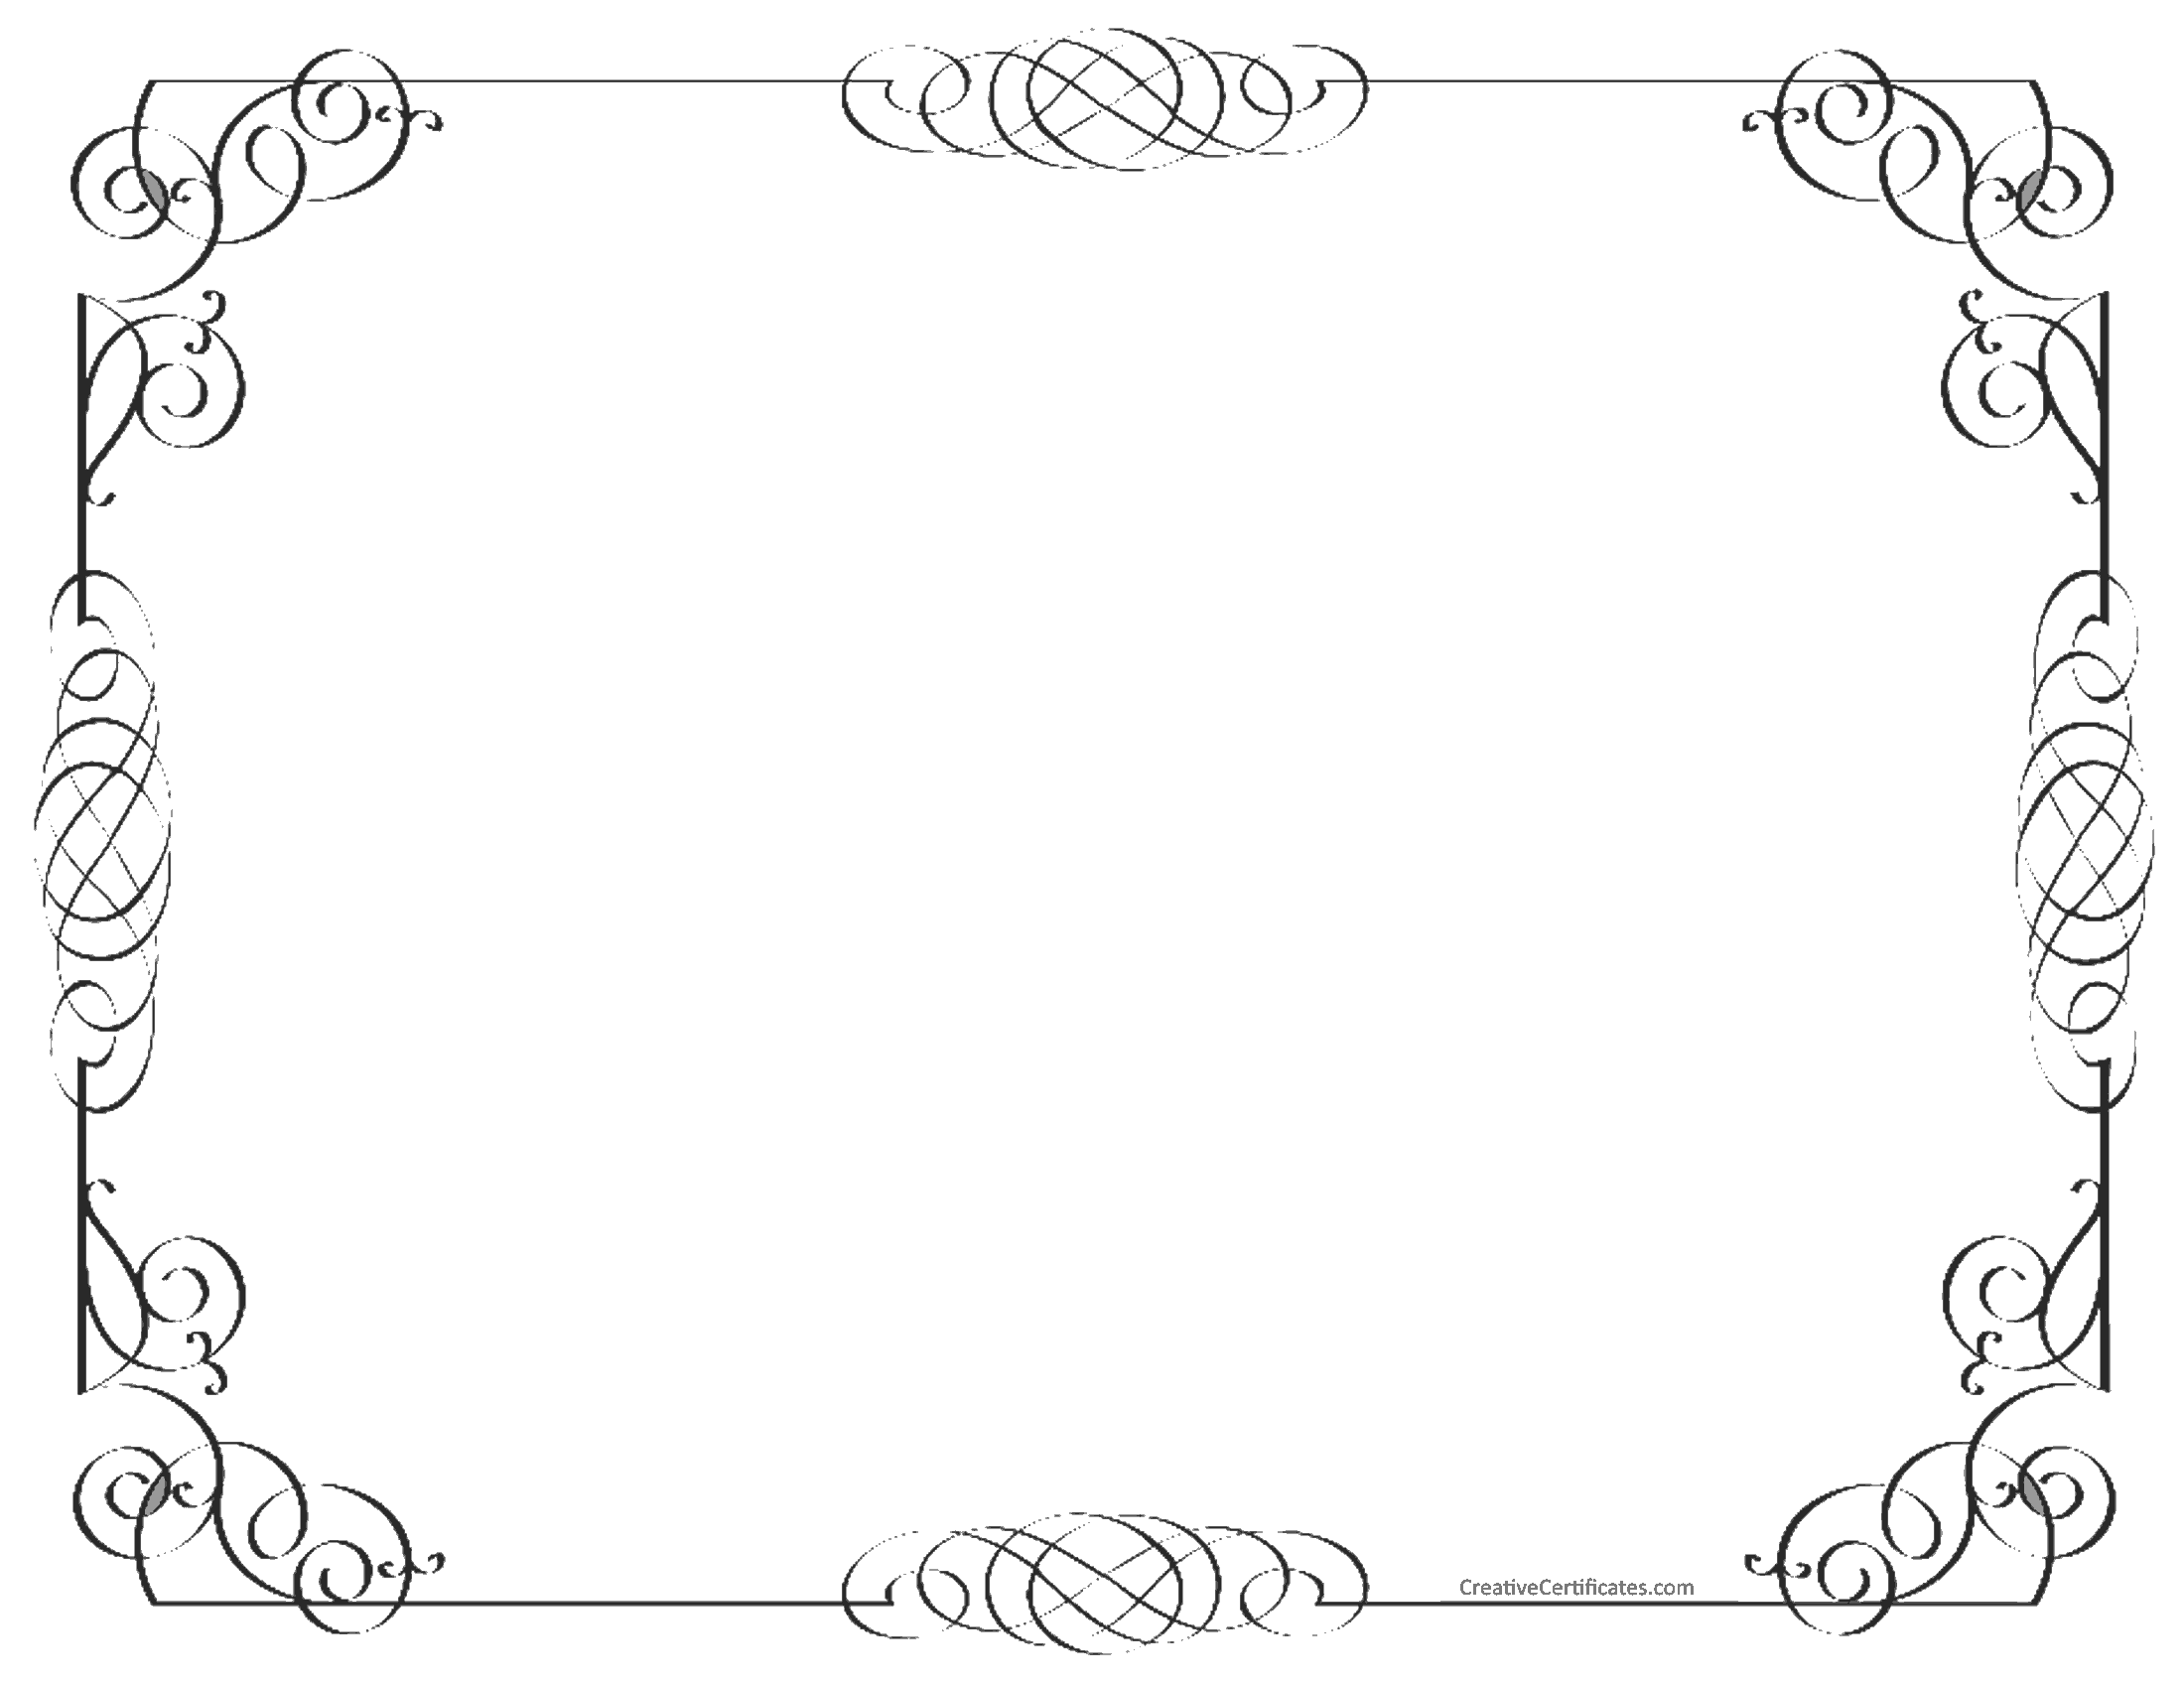 black and white border